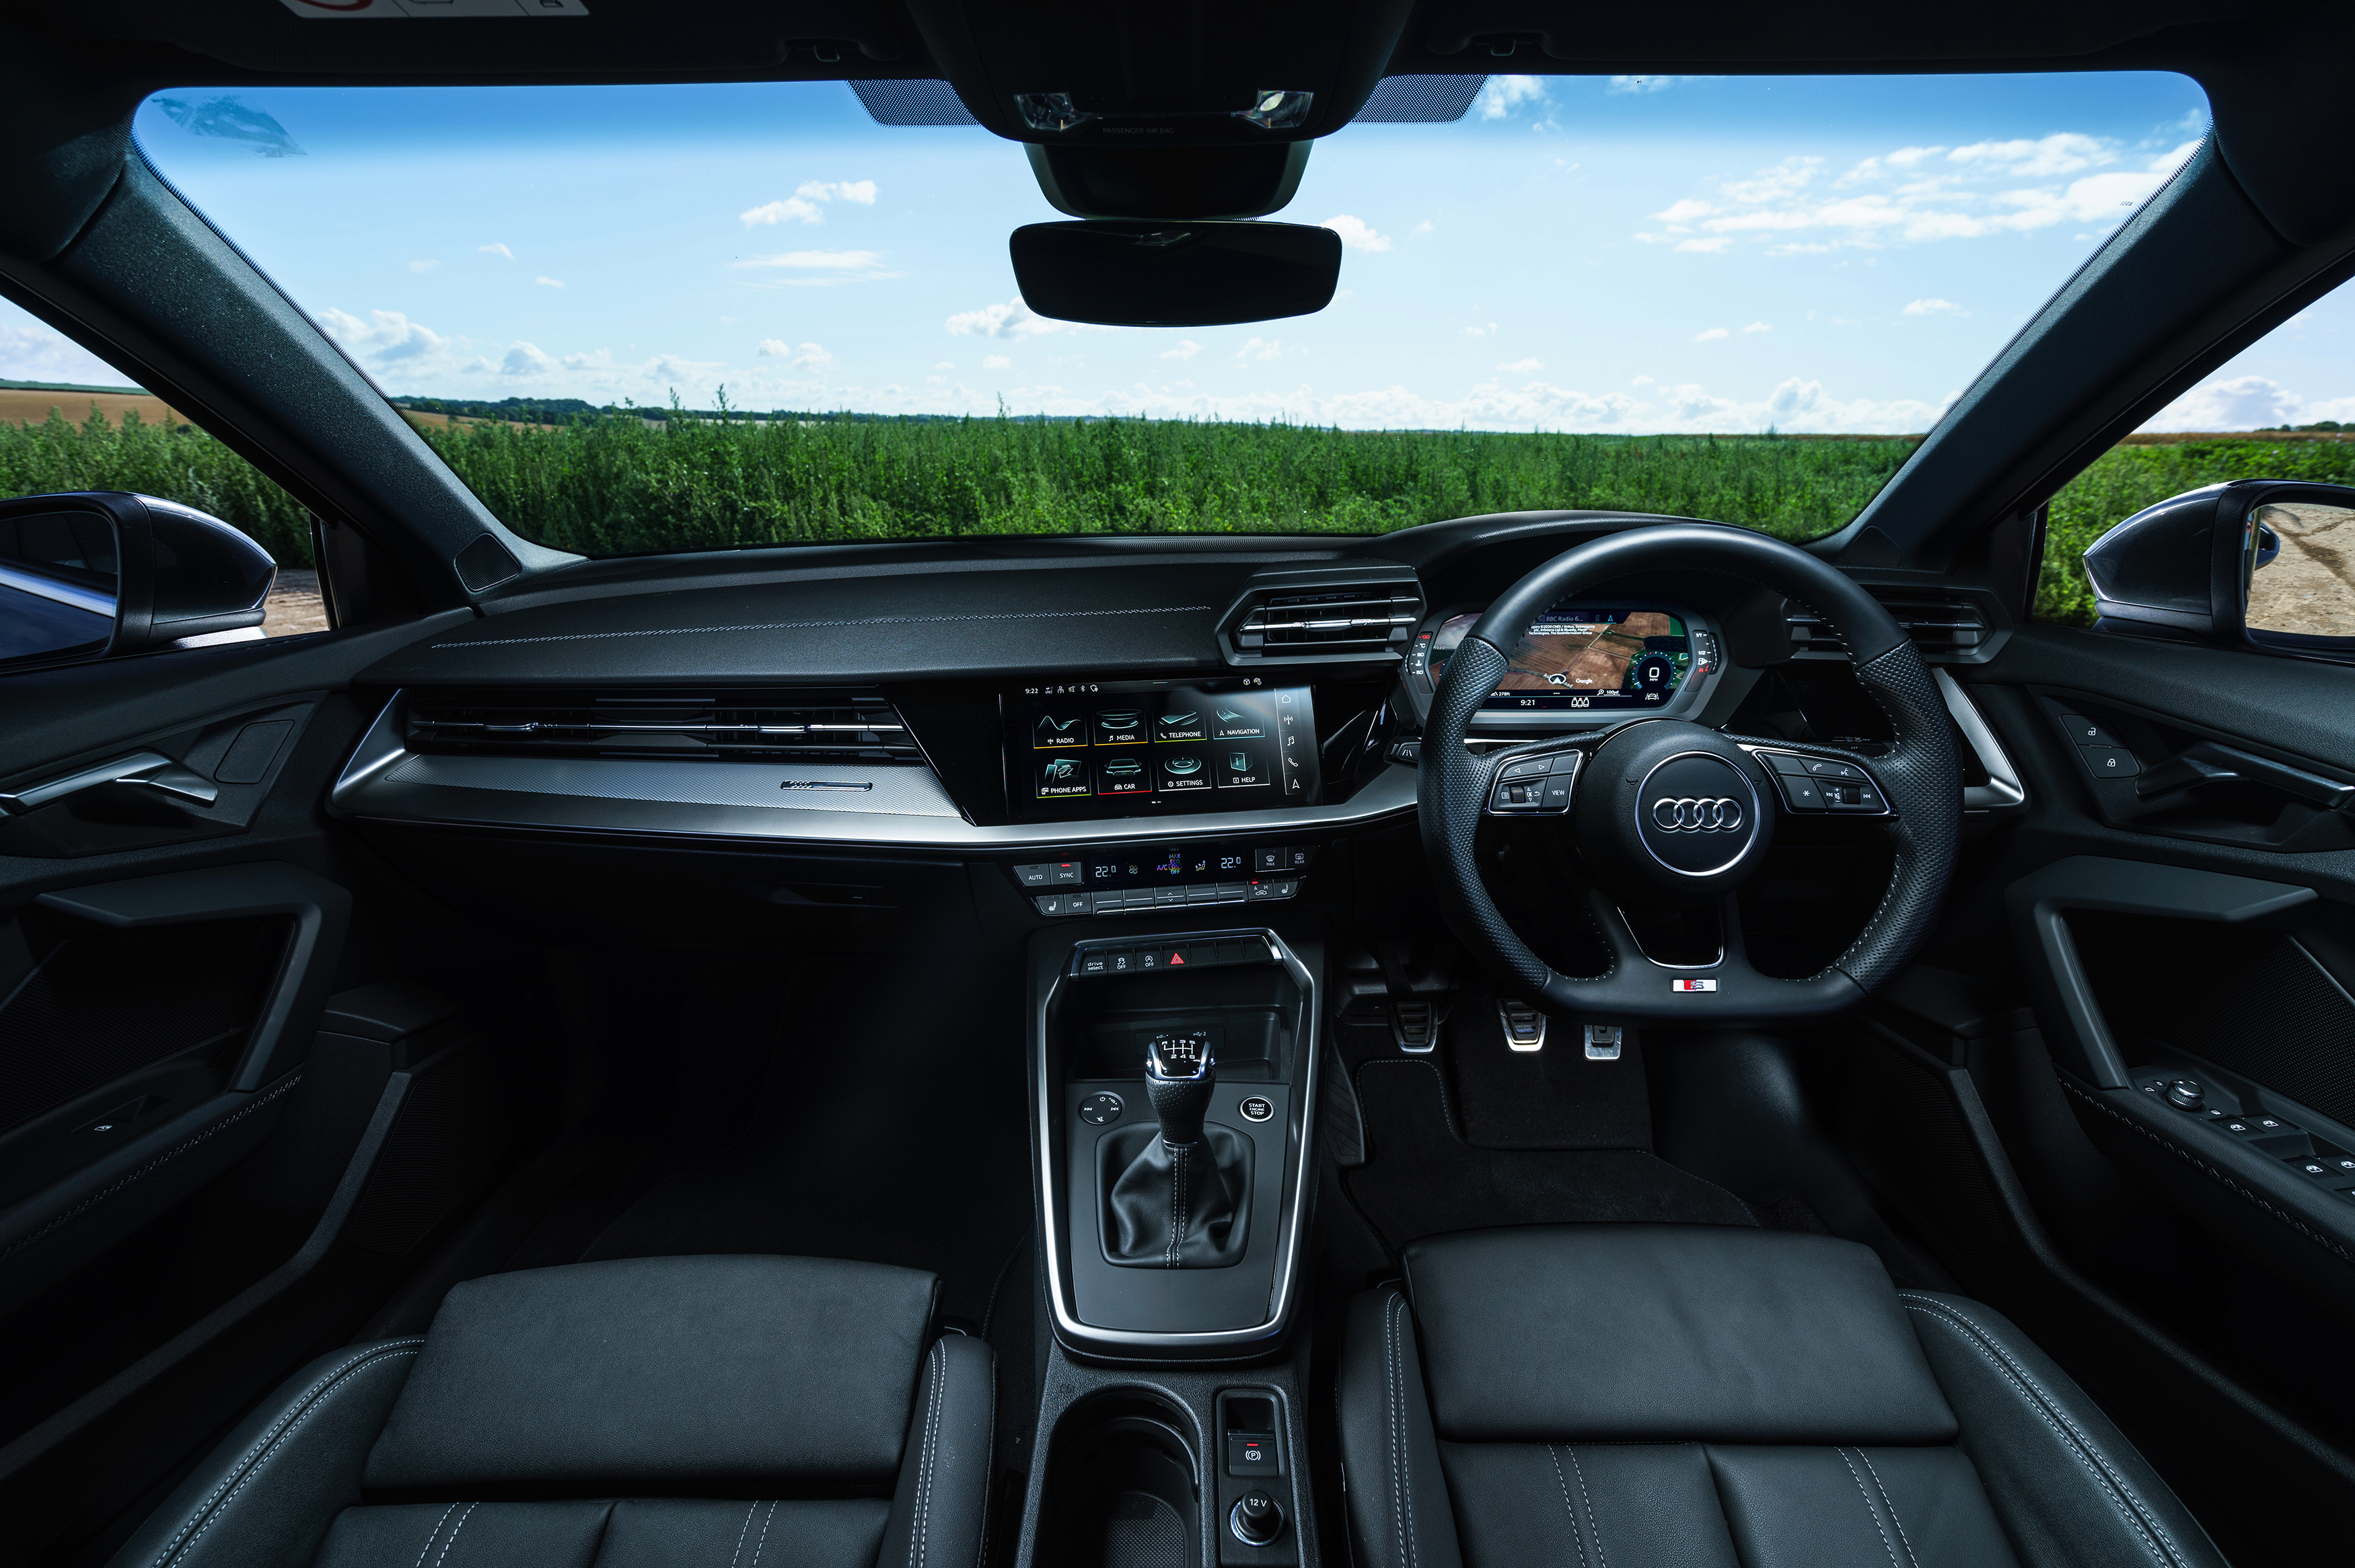 The revamped A3 cabin is typically brilliant, striking the right balance between hi-tech and sensible switches